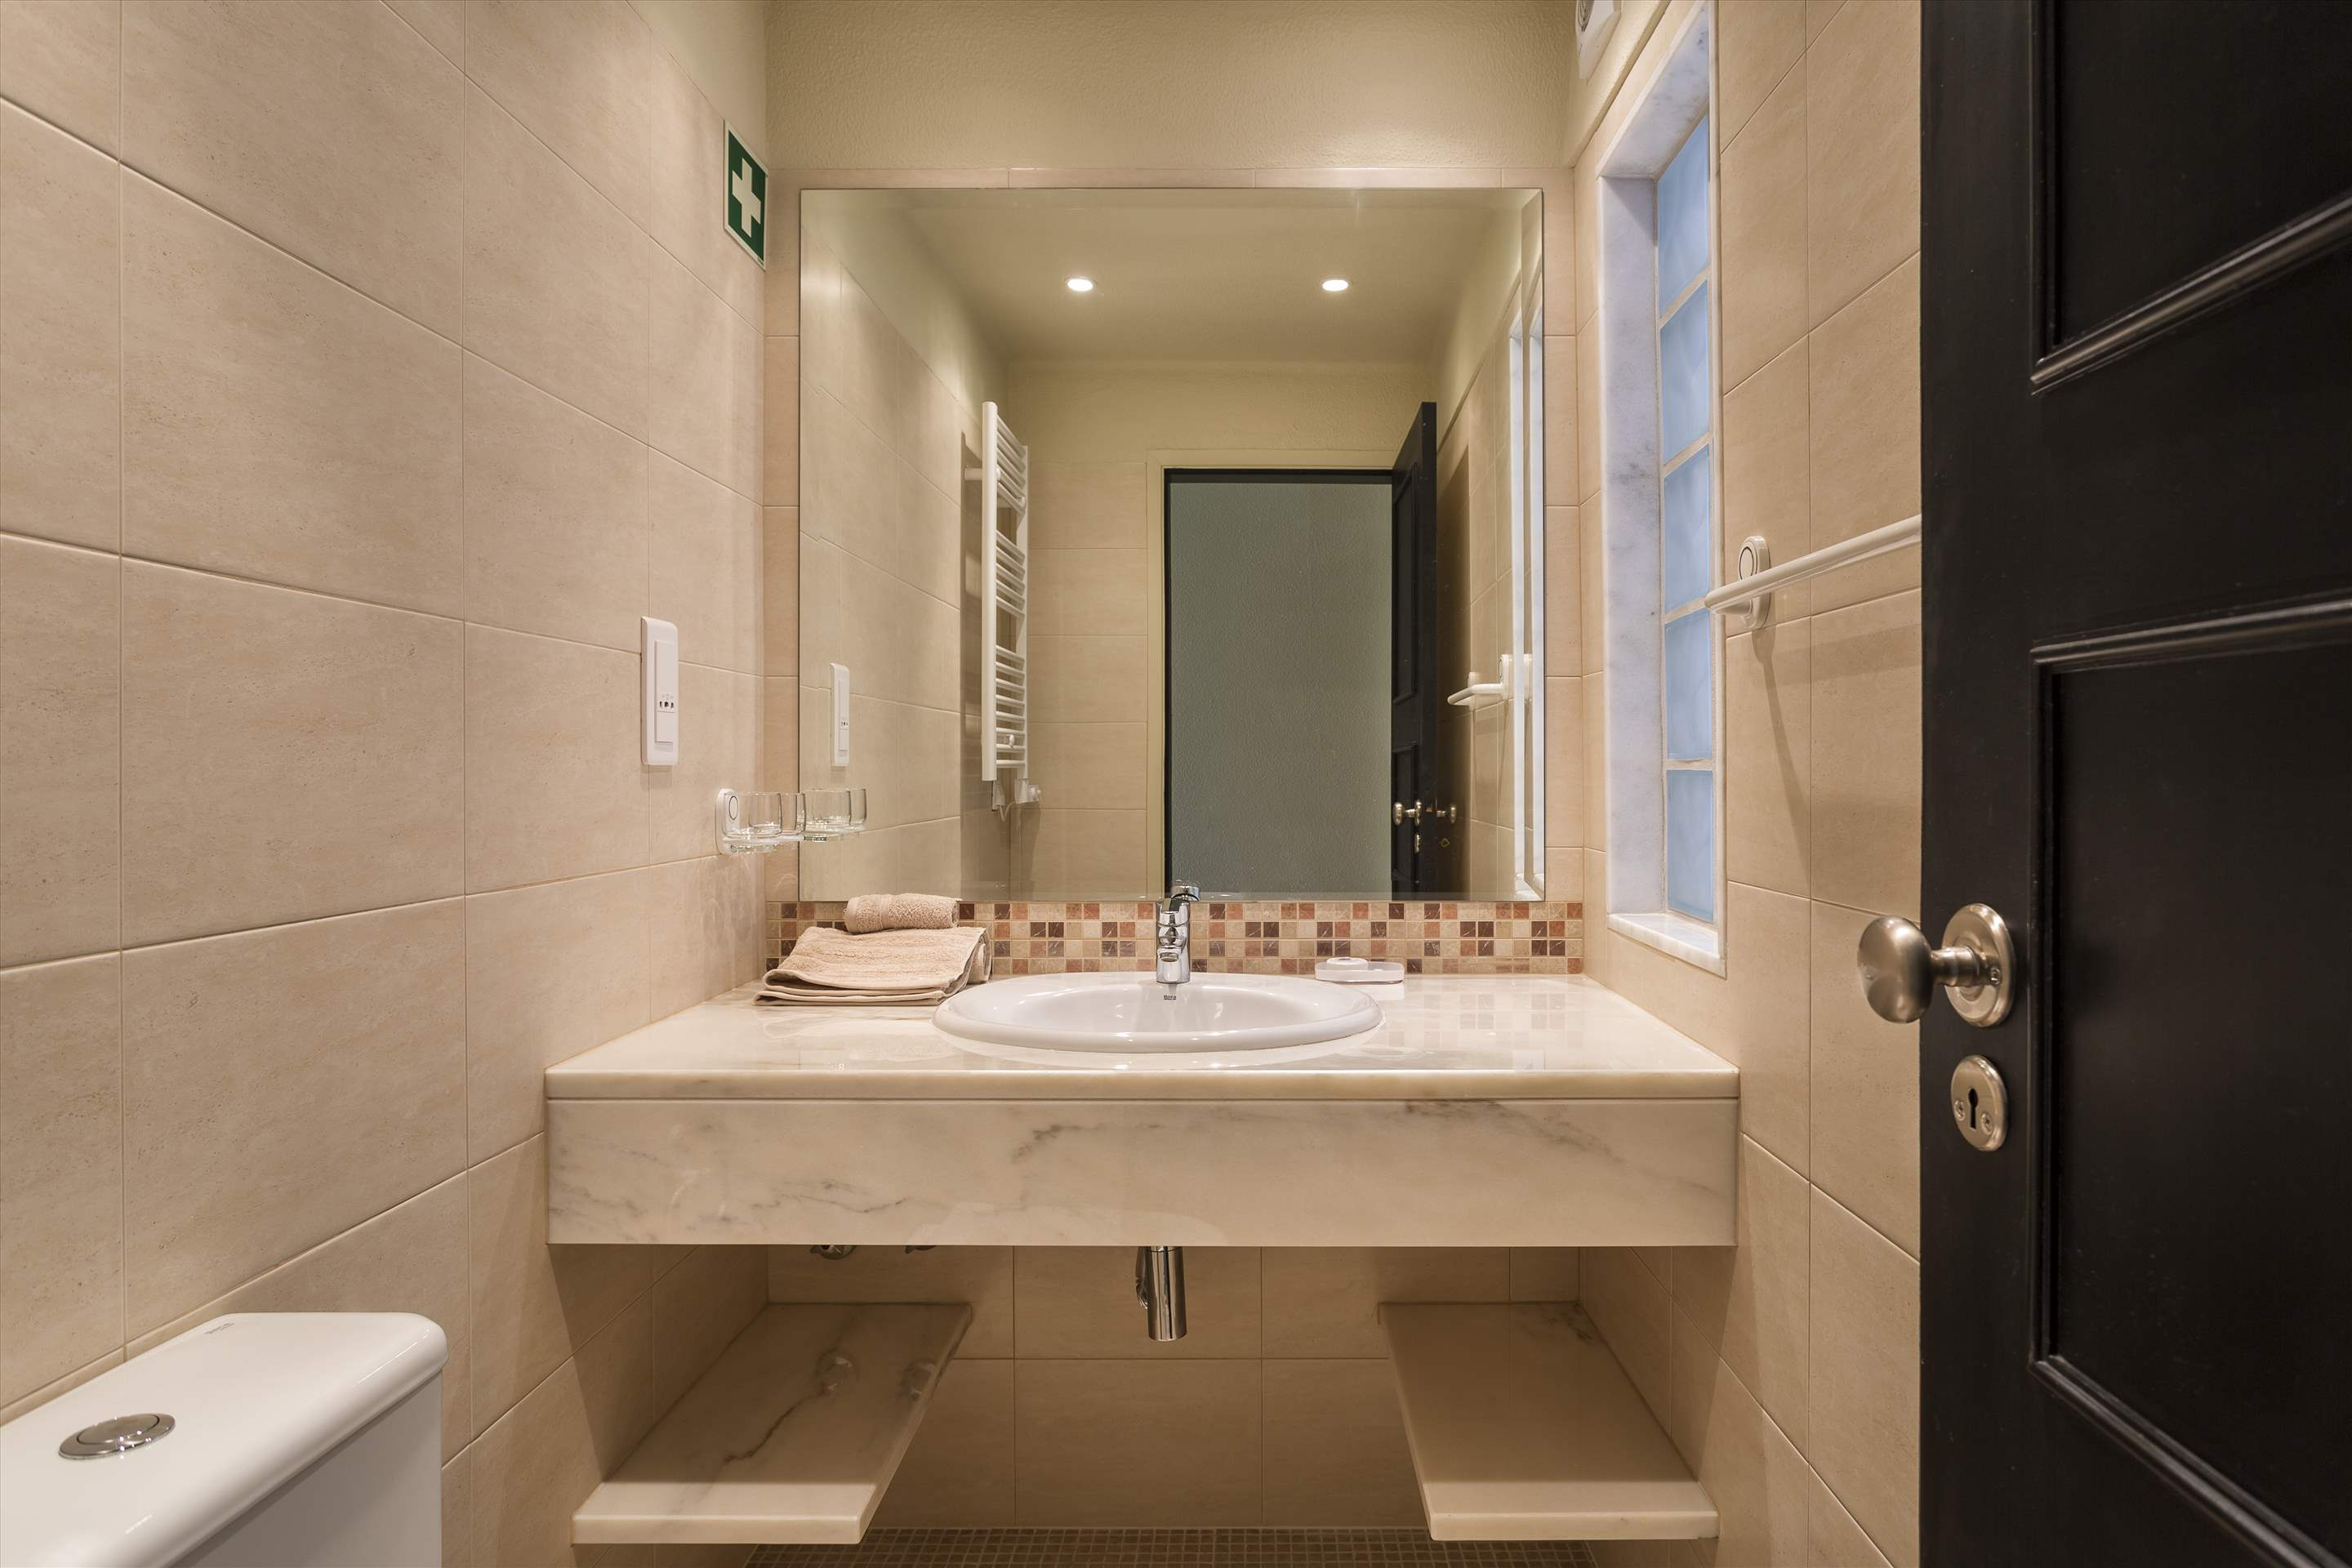 Casa Bella, 3 bedroom apartment in Vale do Lobo, Algarve Photo #14